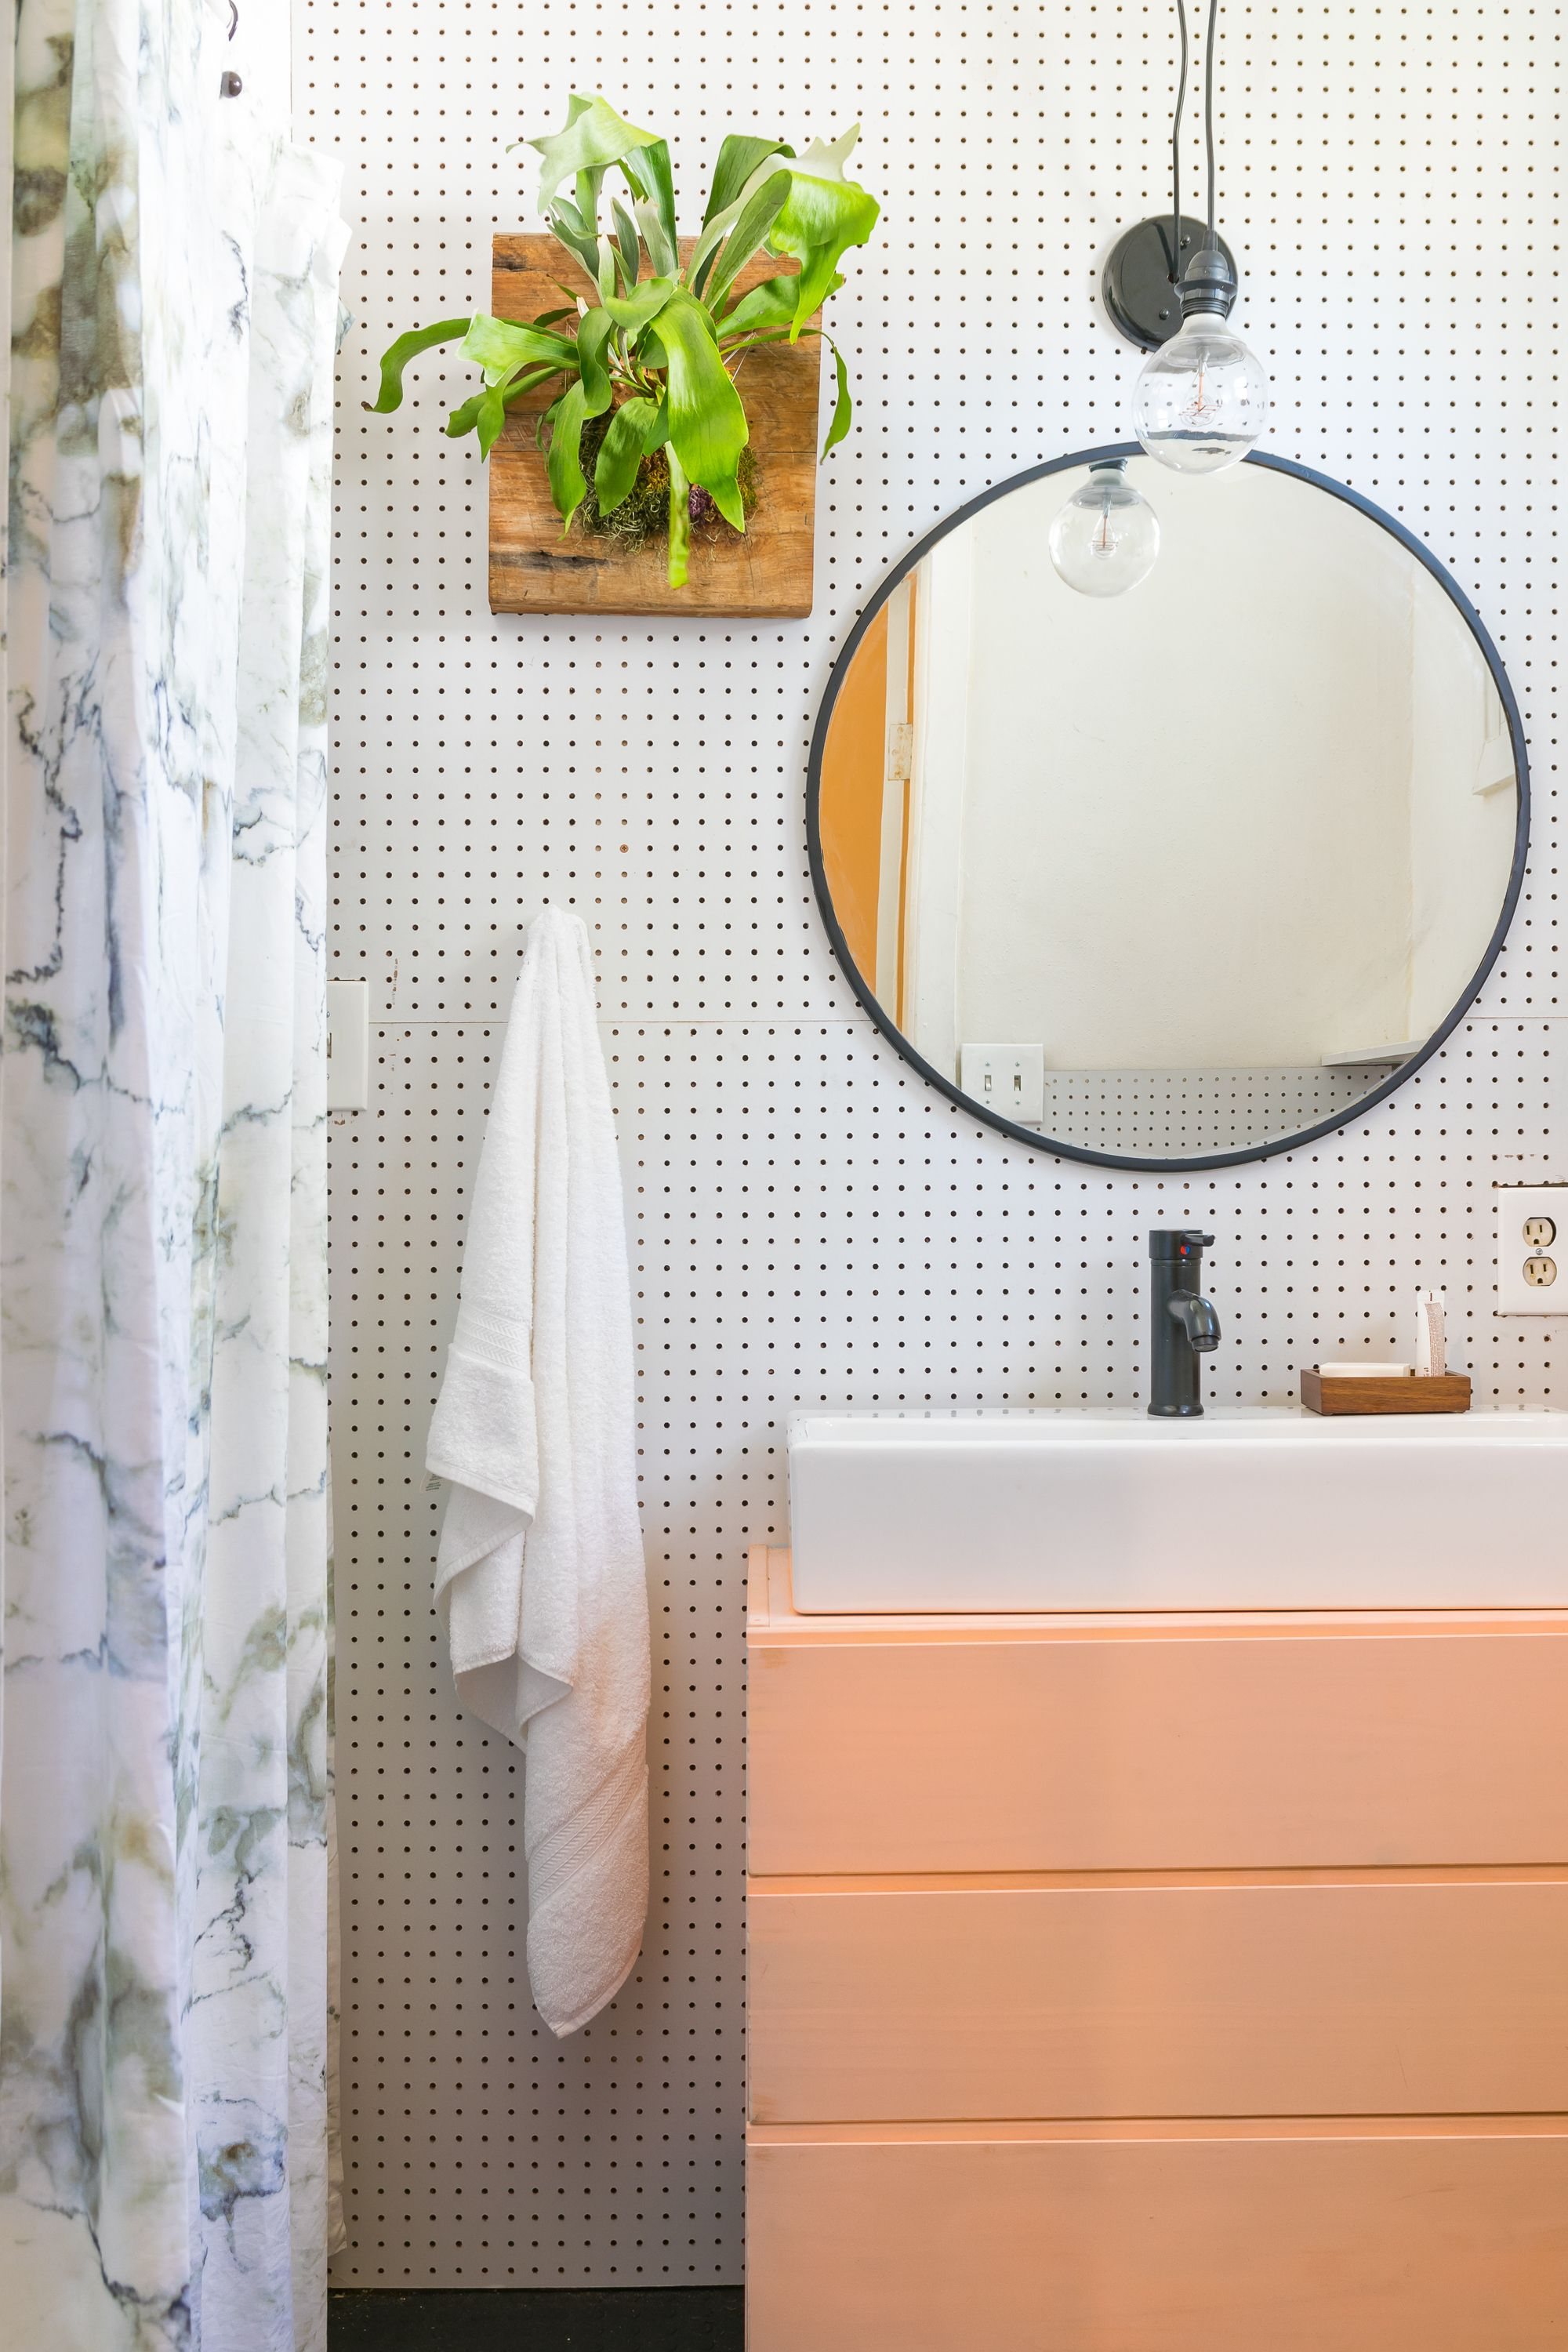 Design Megillah Bathroom Redesign For Under 200: The Big Reveal: Our $500 Rental Bathroom Makeover